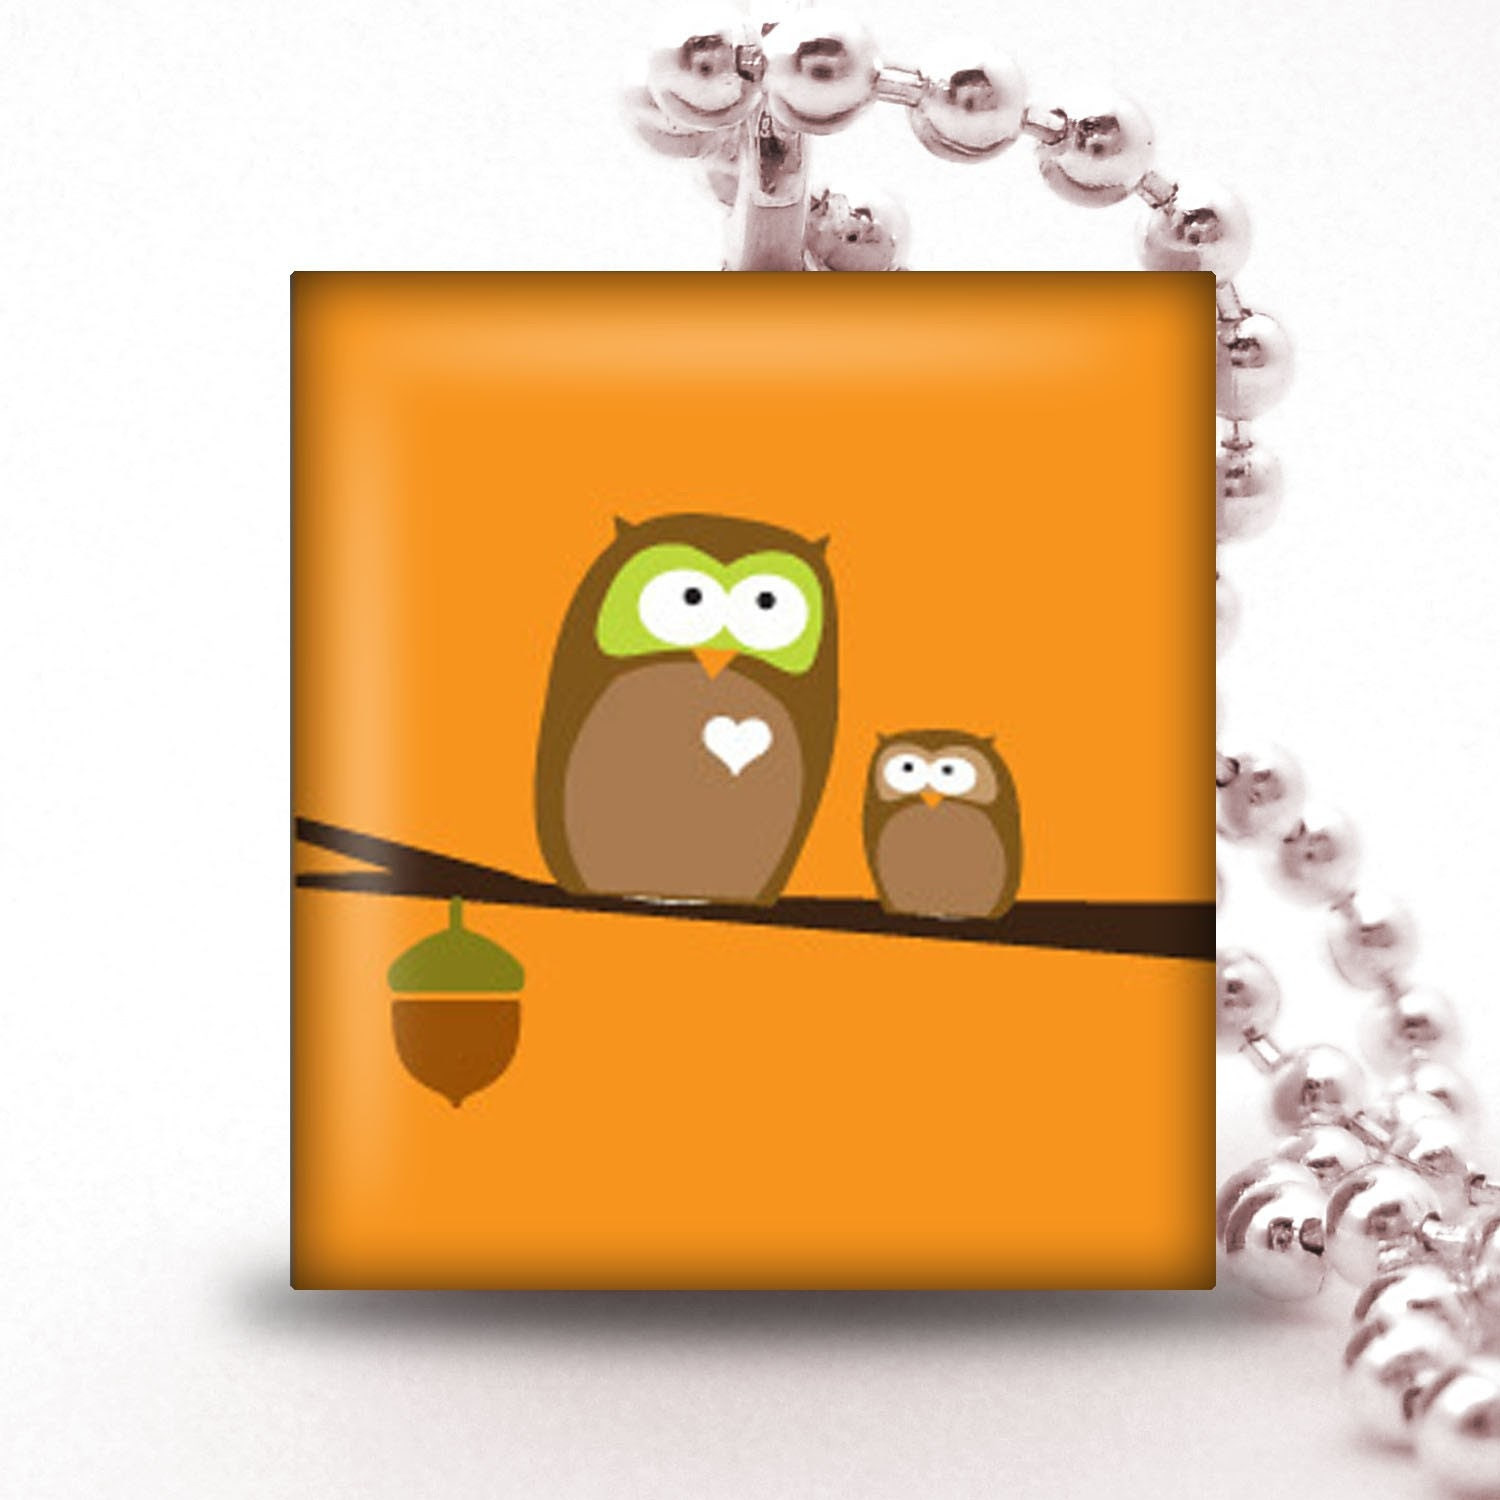 Scrabble Tile Pendant - ORANGE WITH TWO OWLS - Buy 2 Pendants Get 1 Free